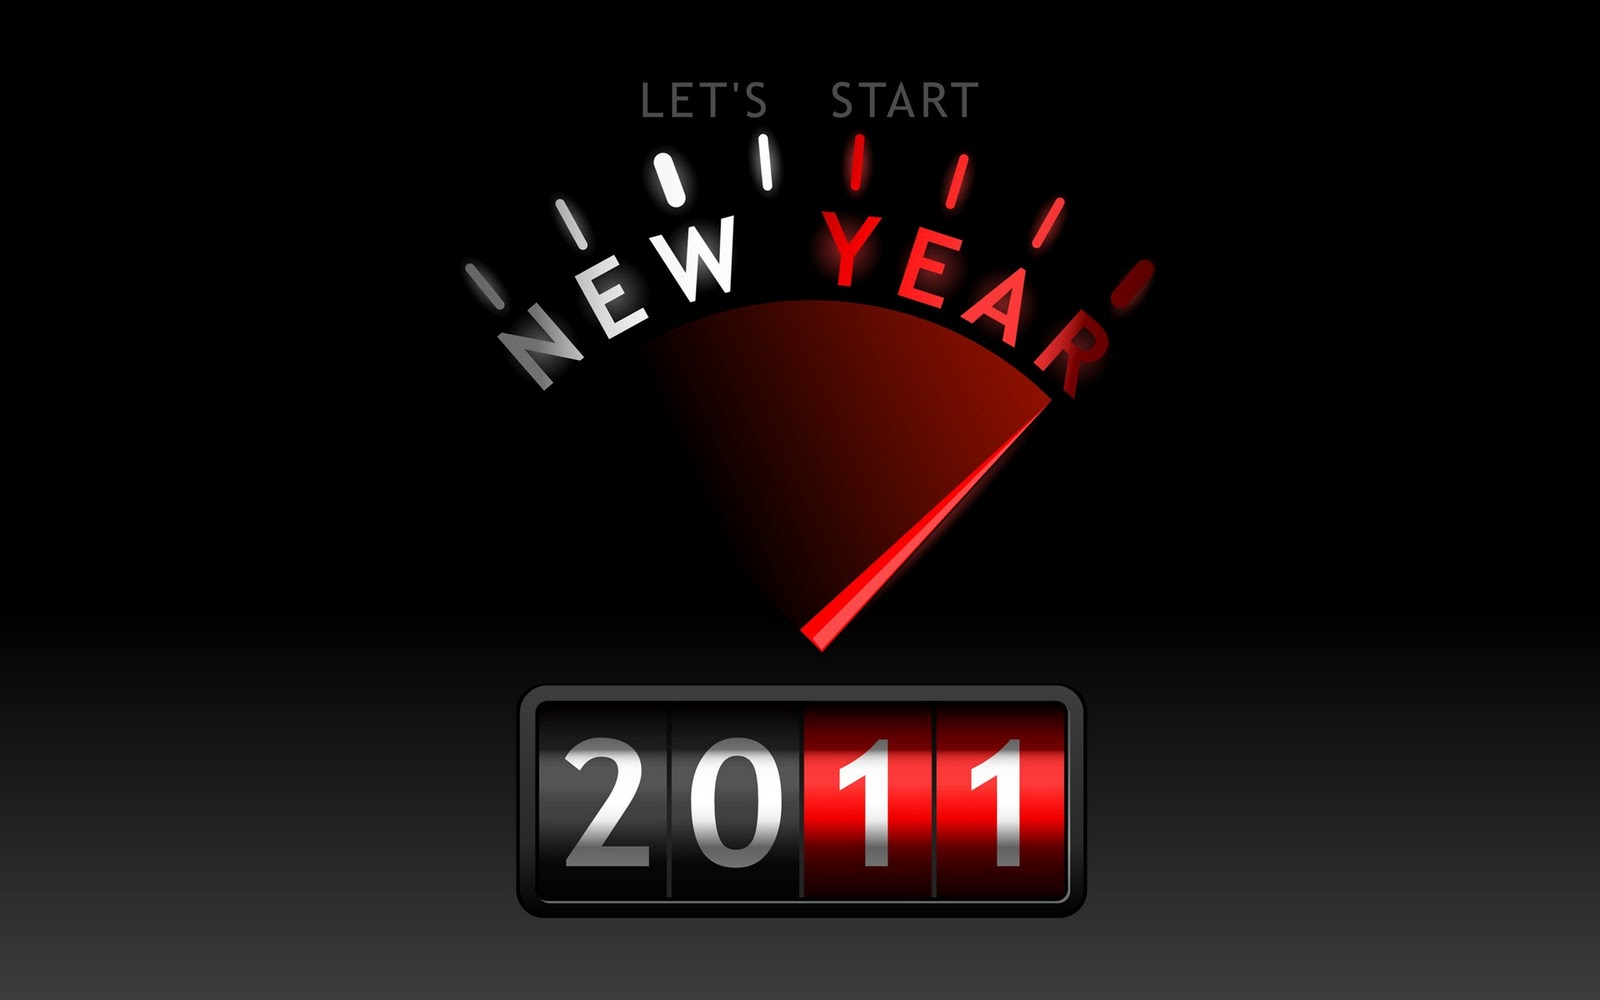 http://4.bp.blogspot.com/_l-o-Y5g4yyI/TR3XXx8DC3I/AAAAAAAAAVo/7DRoiY2ABS4/s1600/2011-happy-new-year-wallpaper-9.jpg